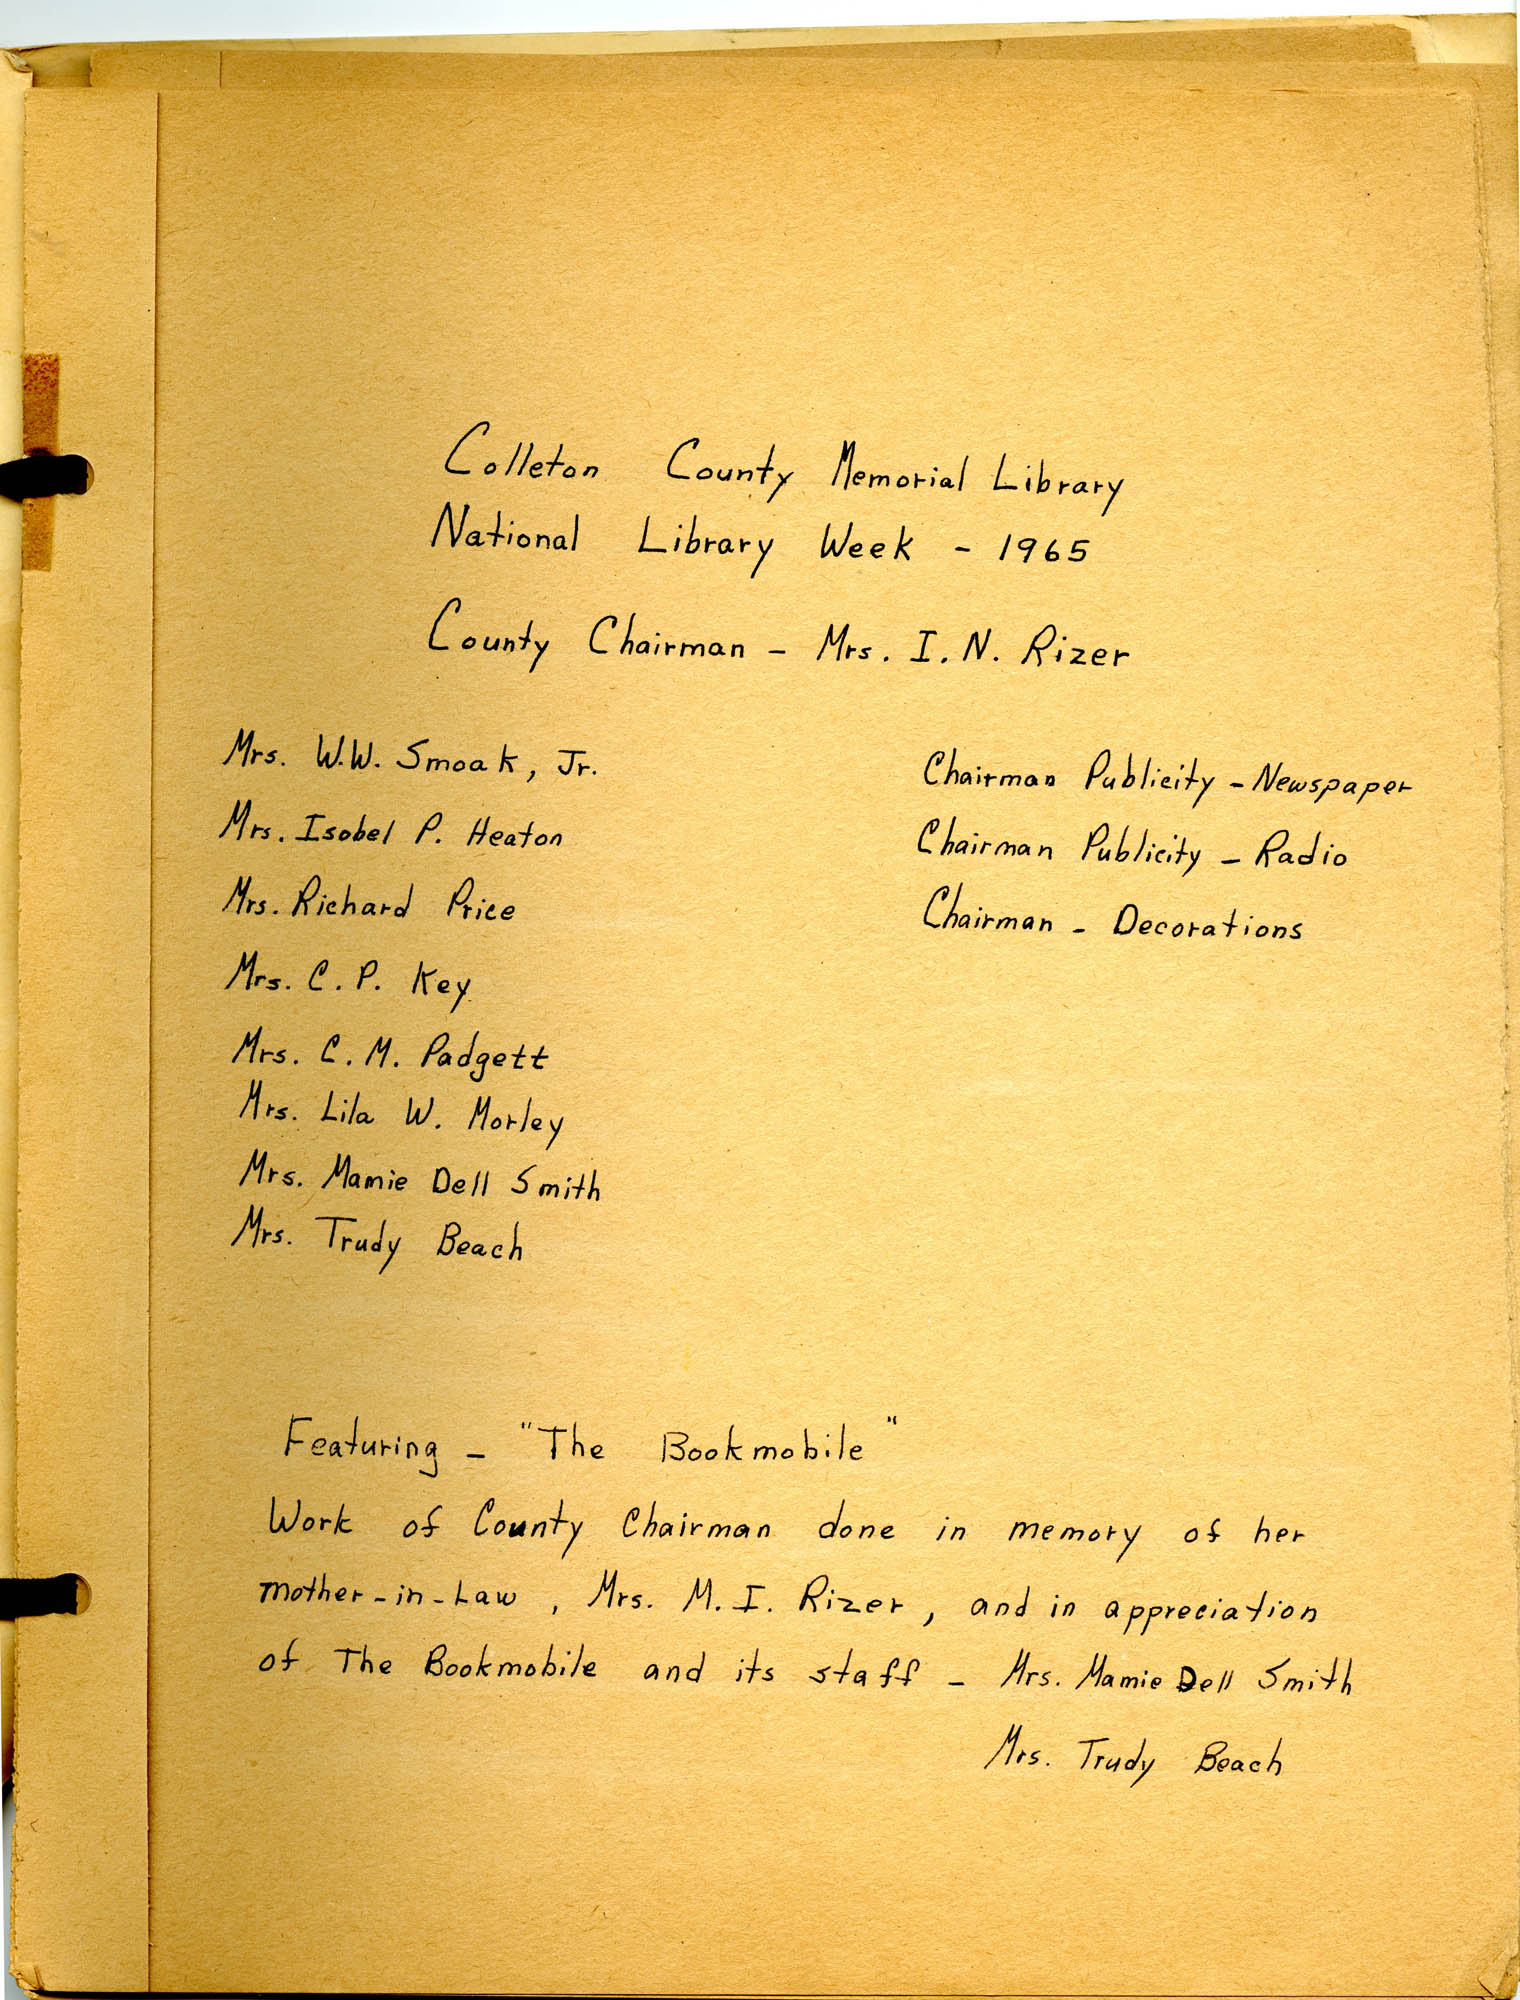 Report of National Library Week - 1965, Title Page